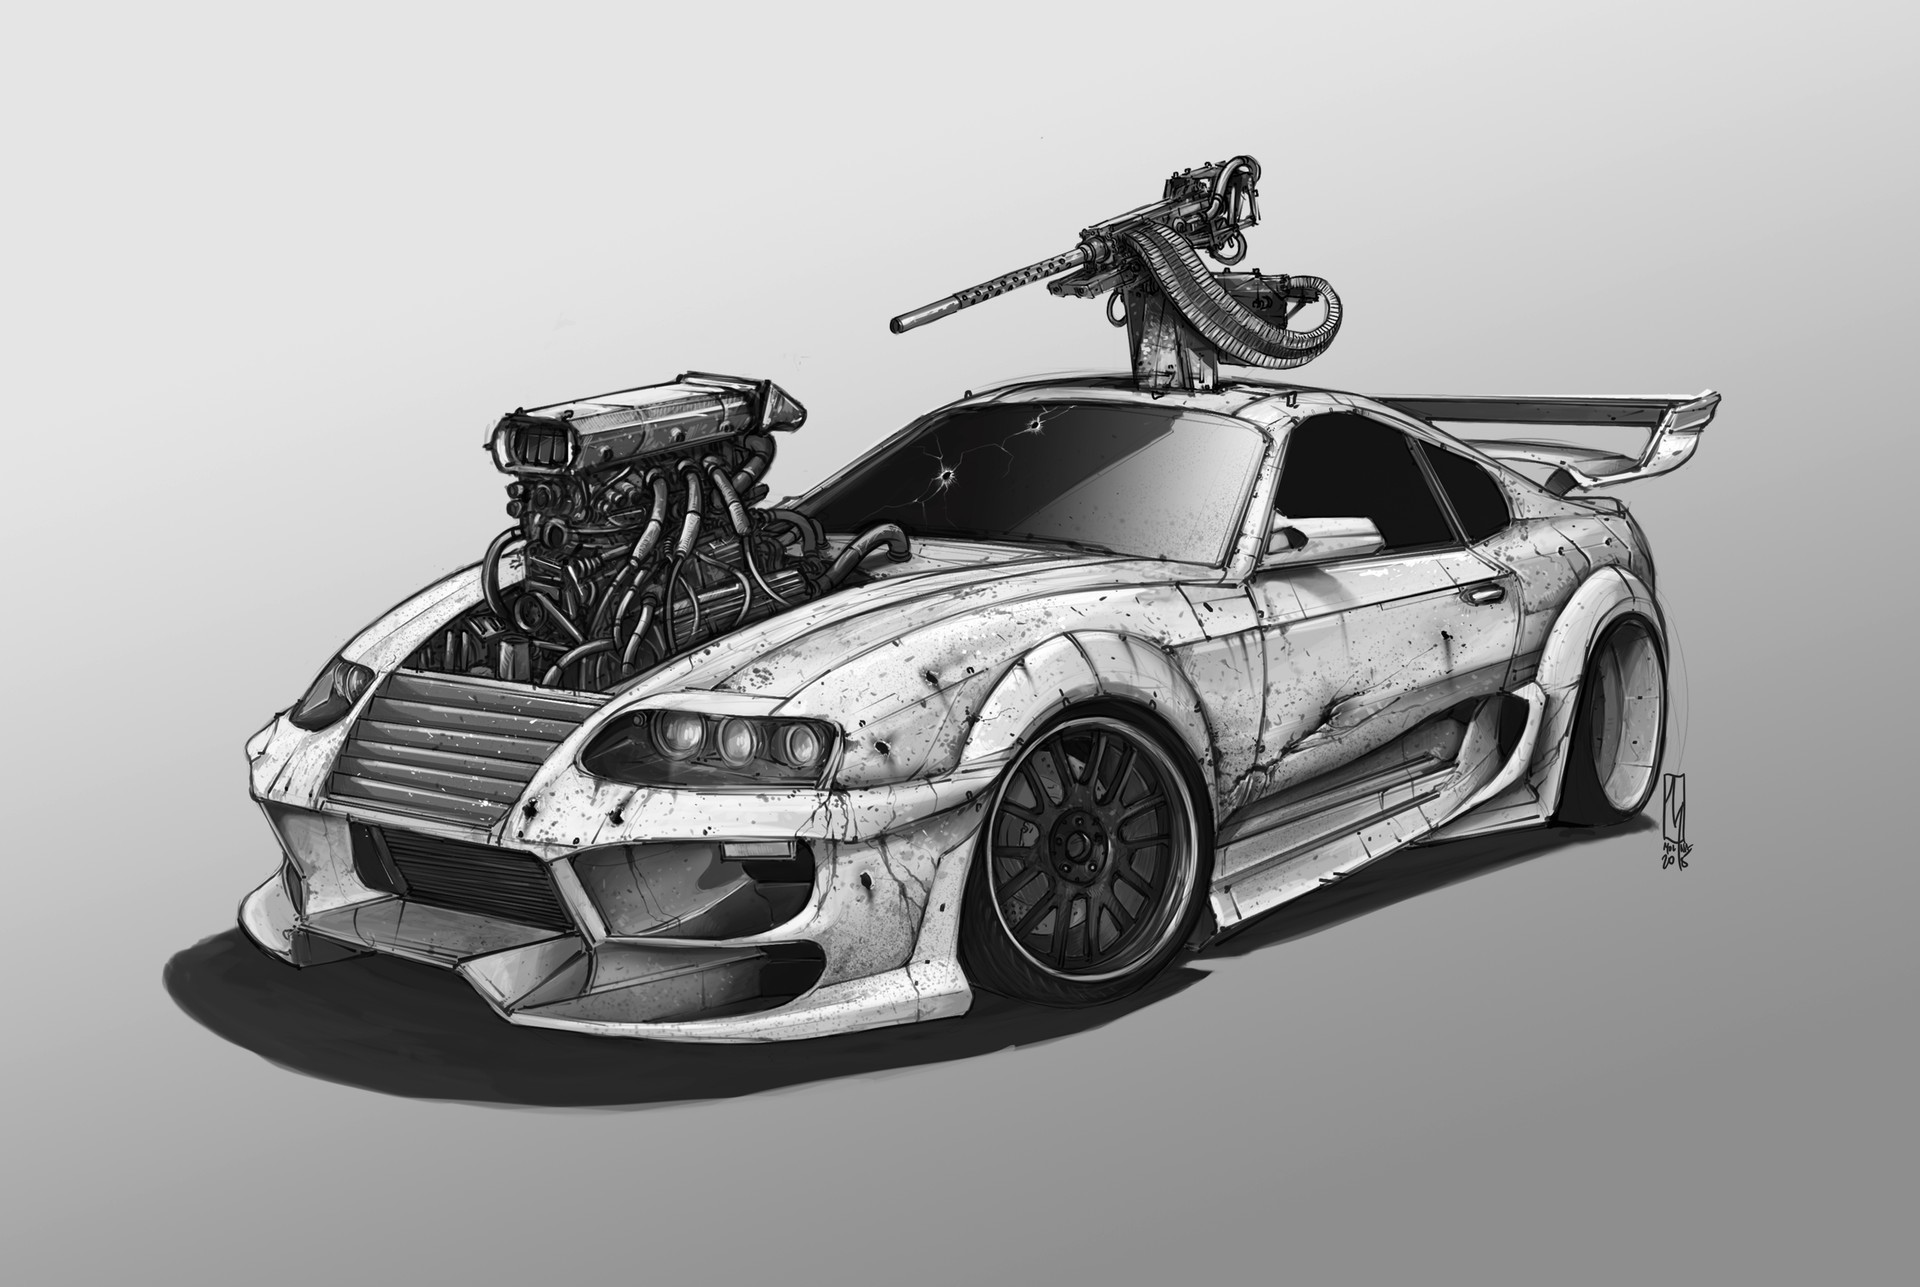 Fast And Furious 4 Cars Wallpapers Car Toyota Supra Artwork Wallpapers Hd Desktop And